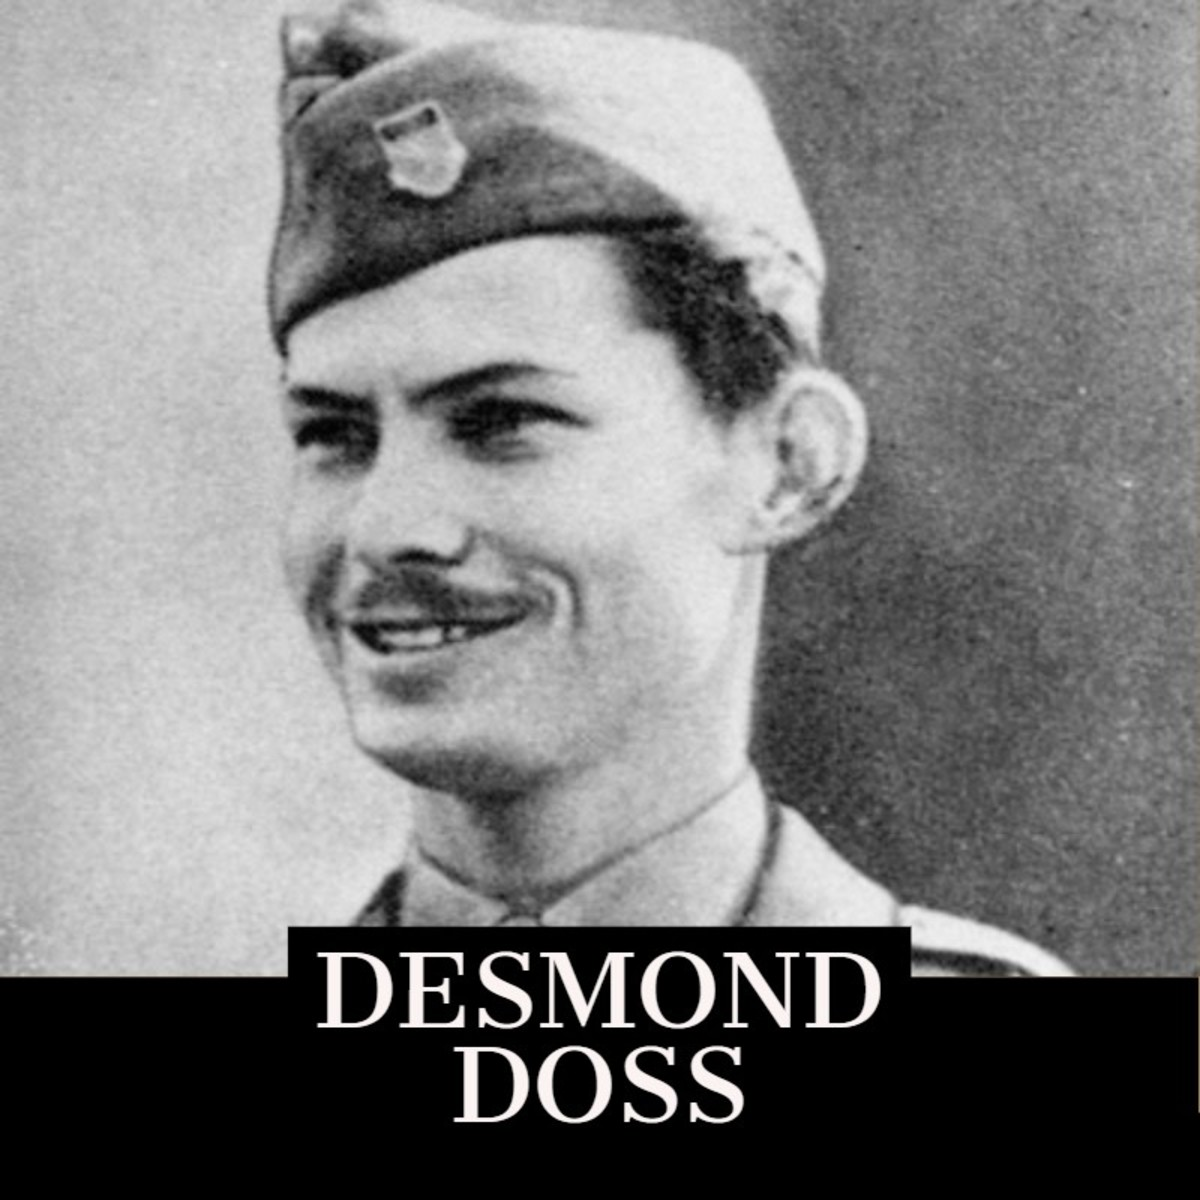 Desmond Doss: The Famous Army Medic of World War II